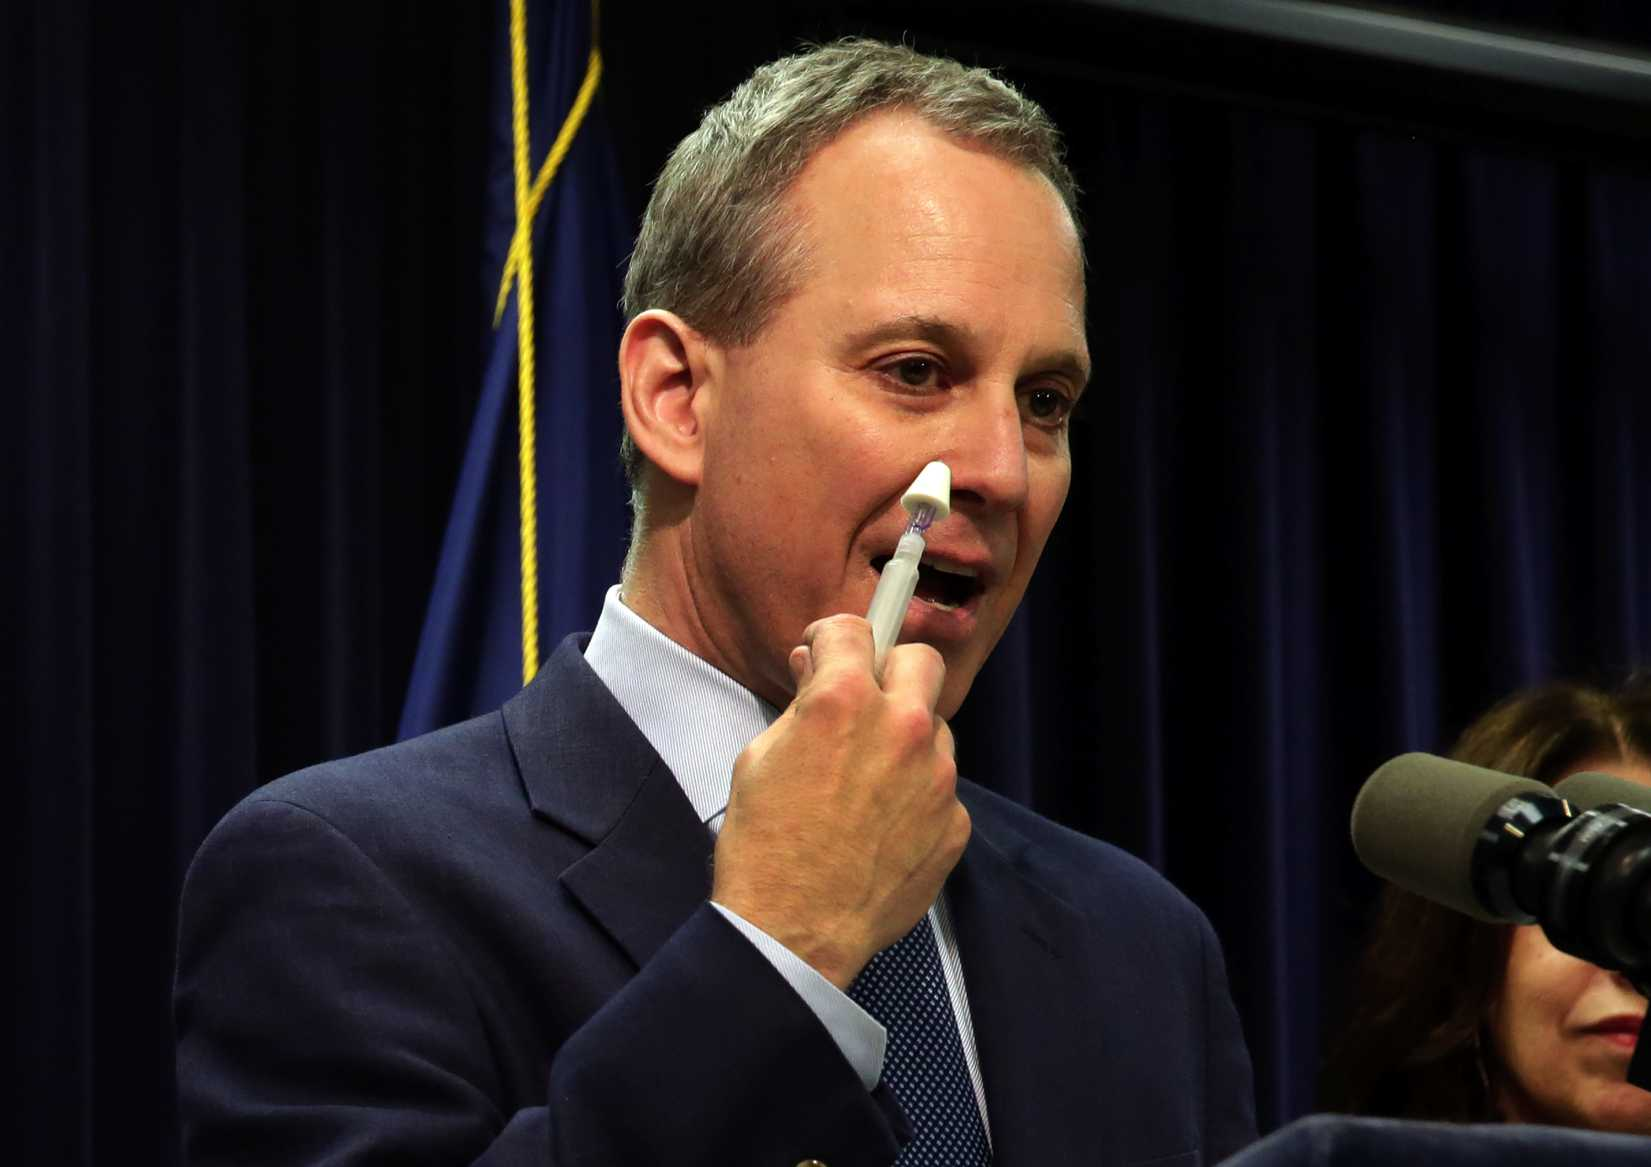 New York State Attorney General Eric Schneiderman demonstrates an inhaler of naloxone, a drug to be included in an overdose-prevention rescue kit, during a news conference in New York City on May 27, 2014